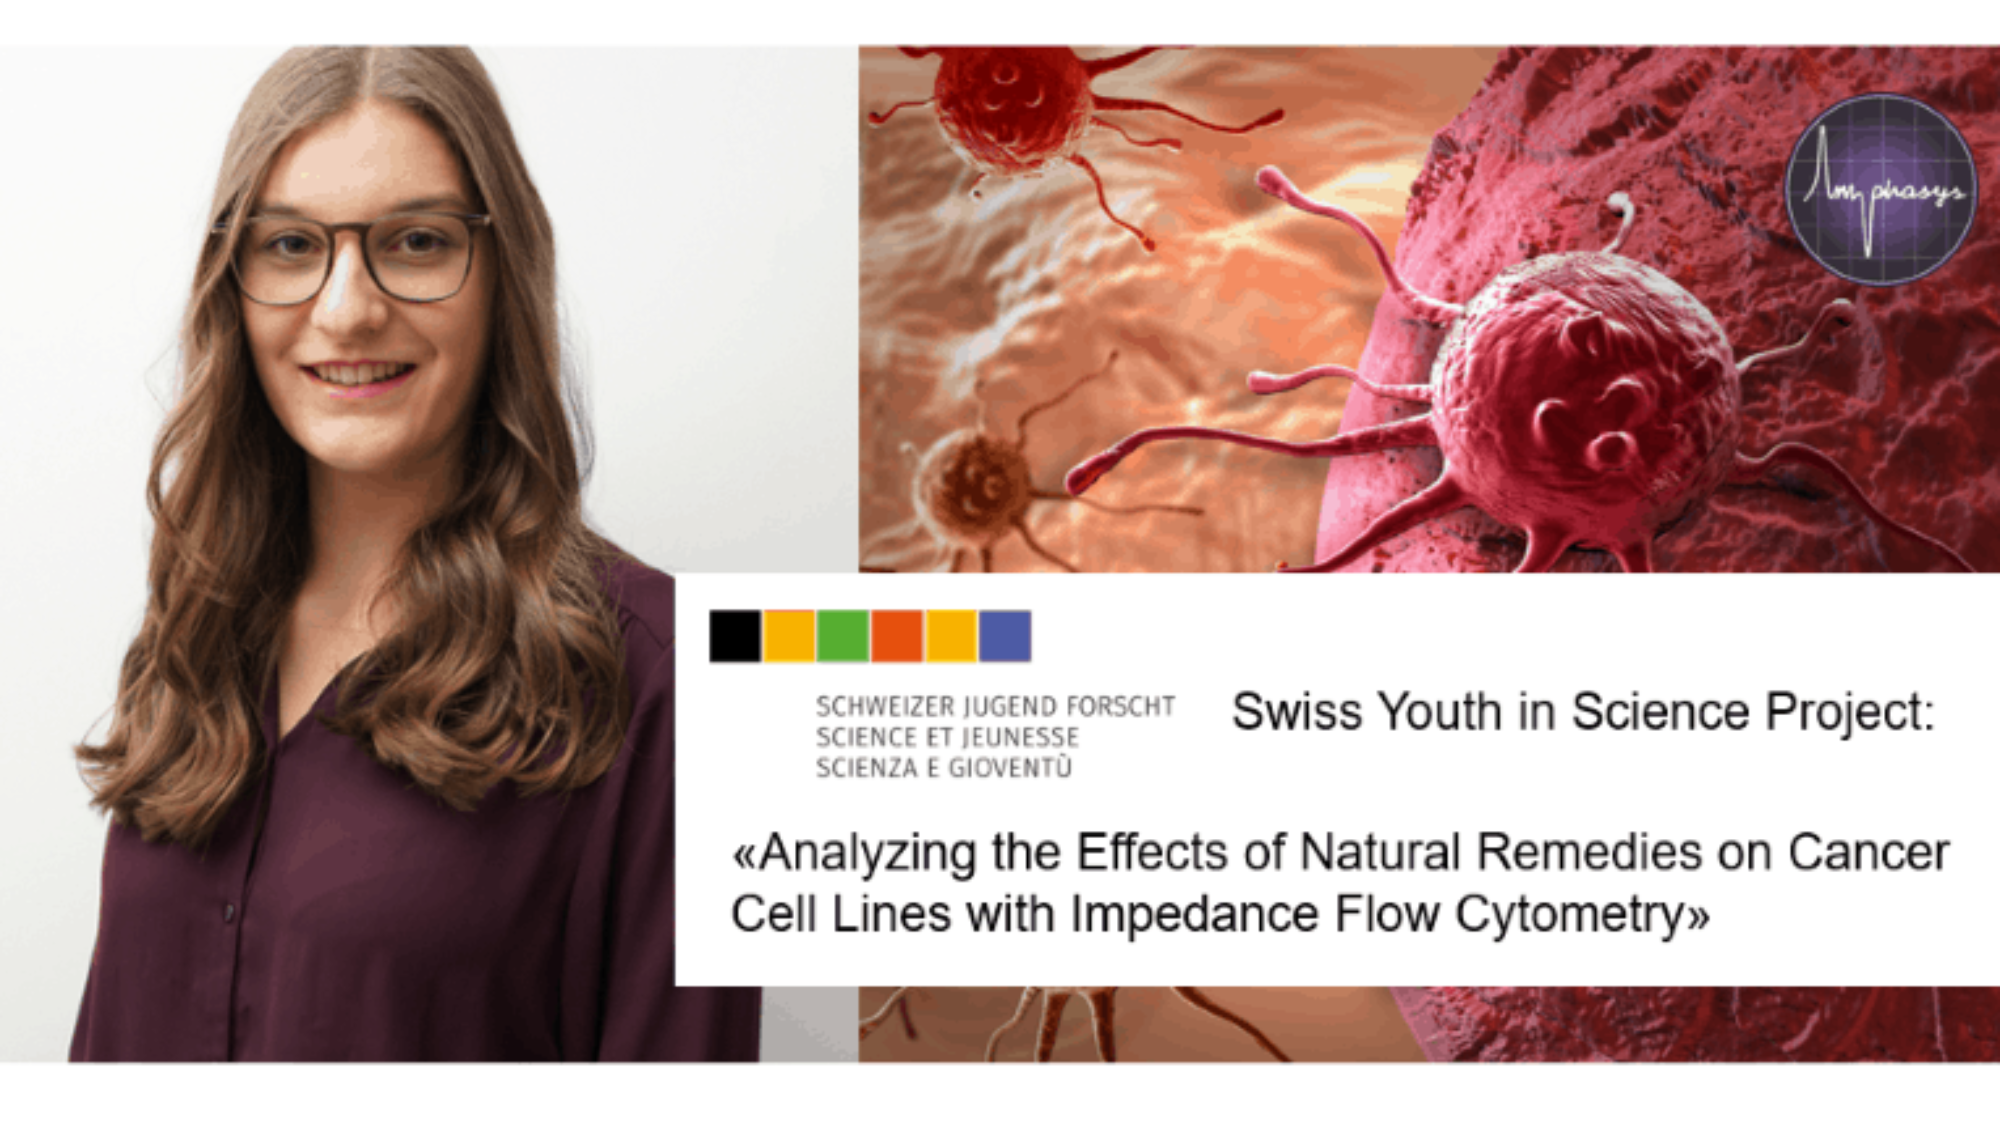 Picture collage honoring Andrea Hunn for her project in Swiss Youth in Science